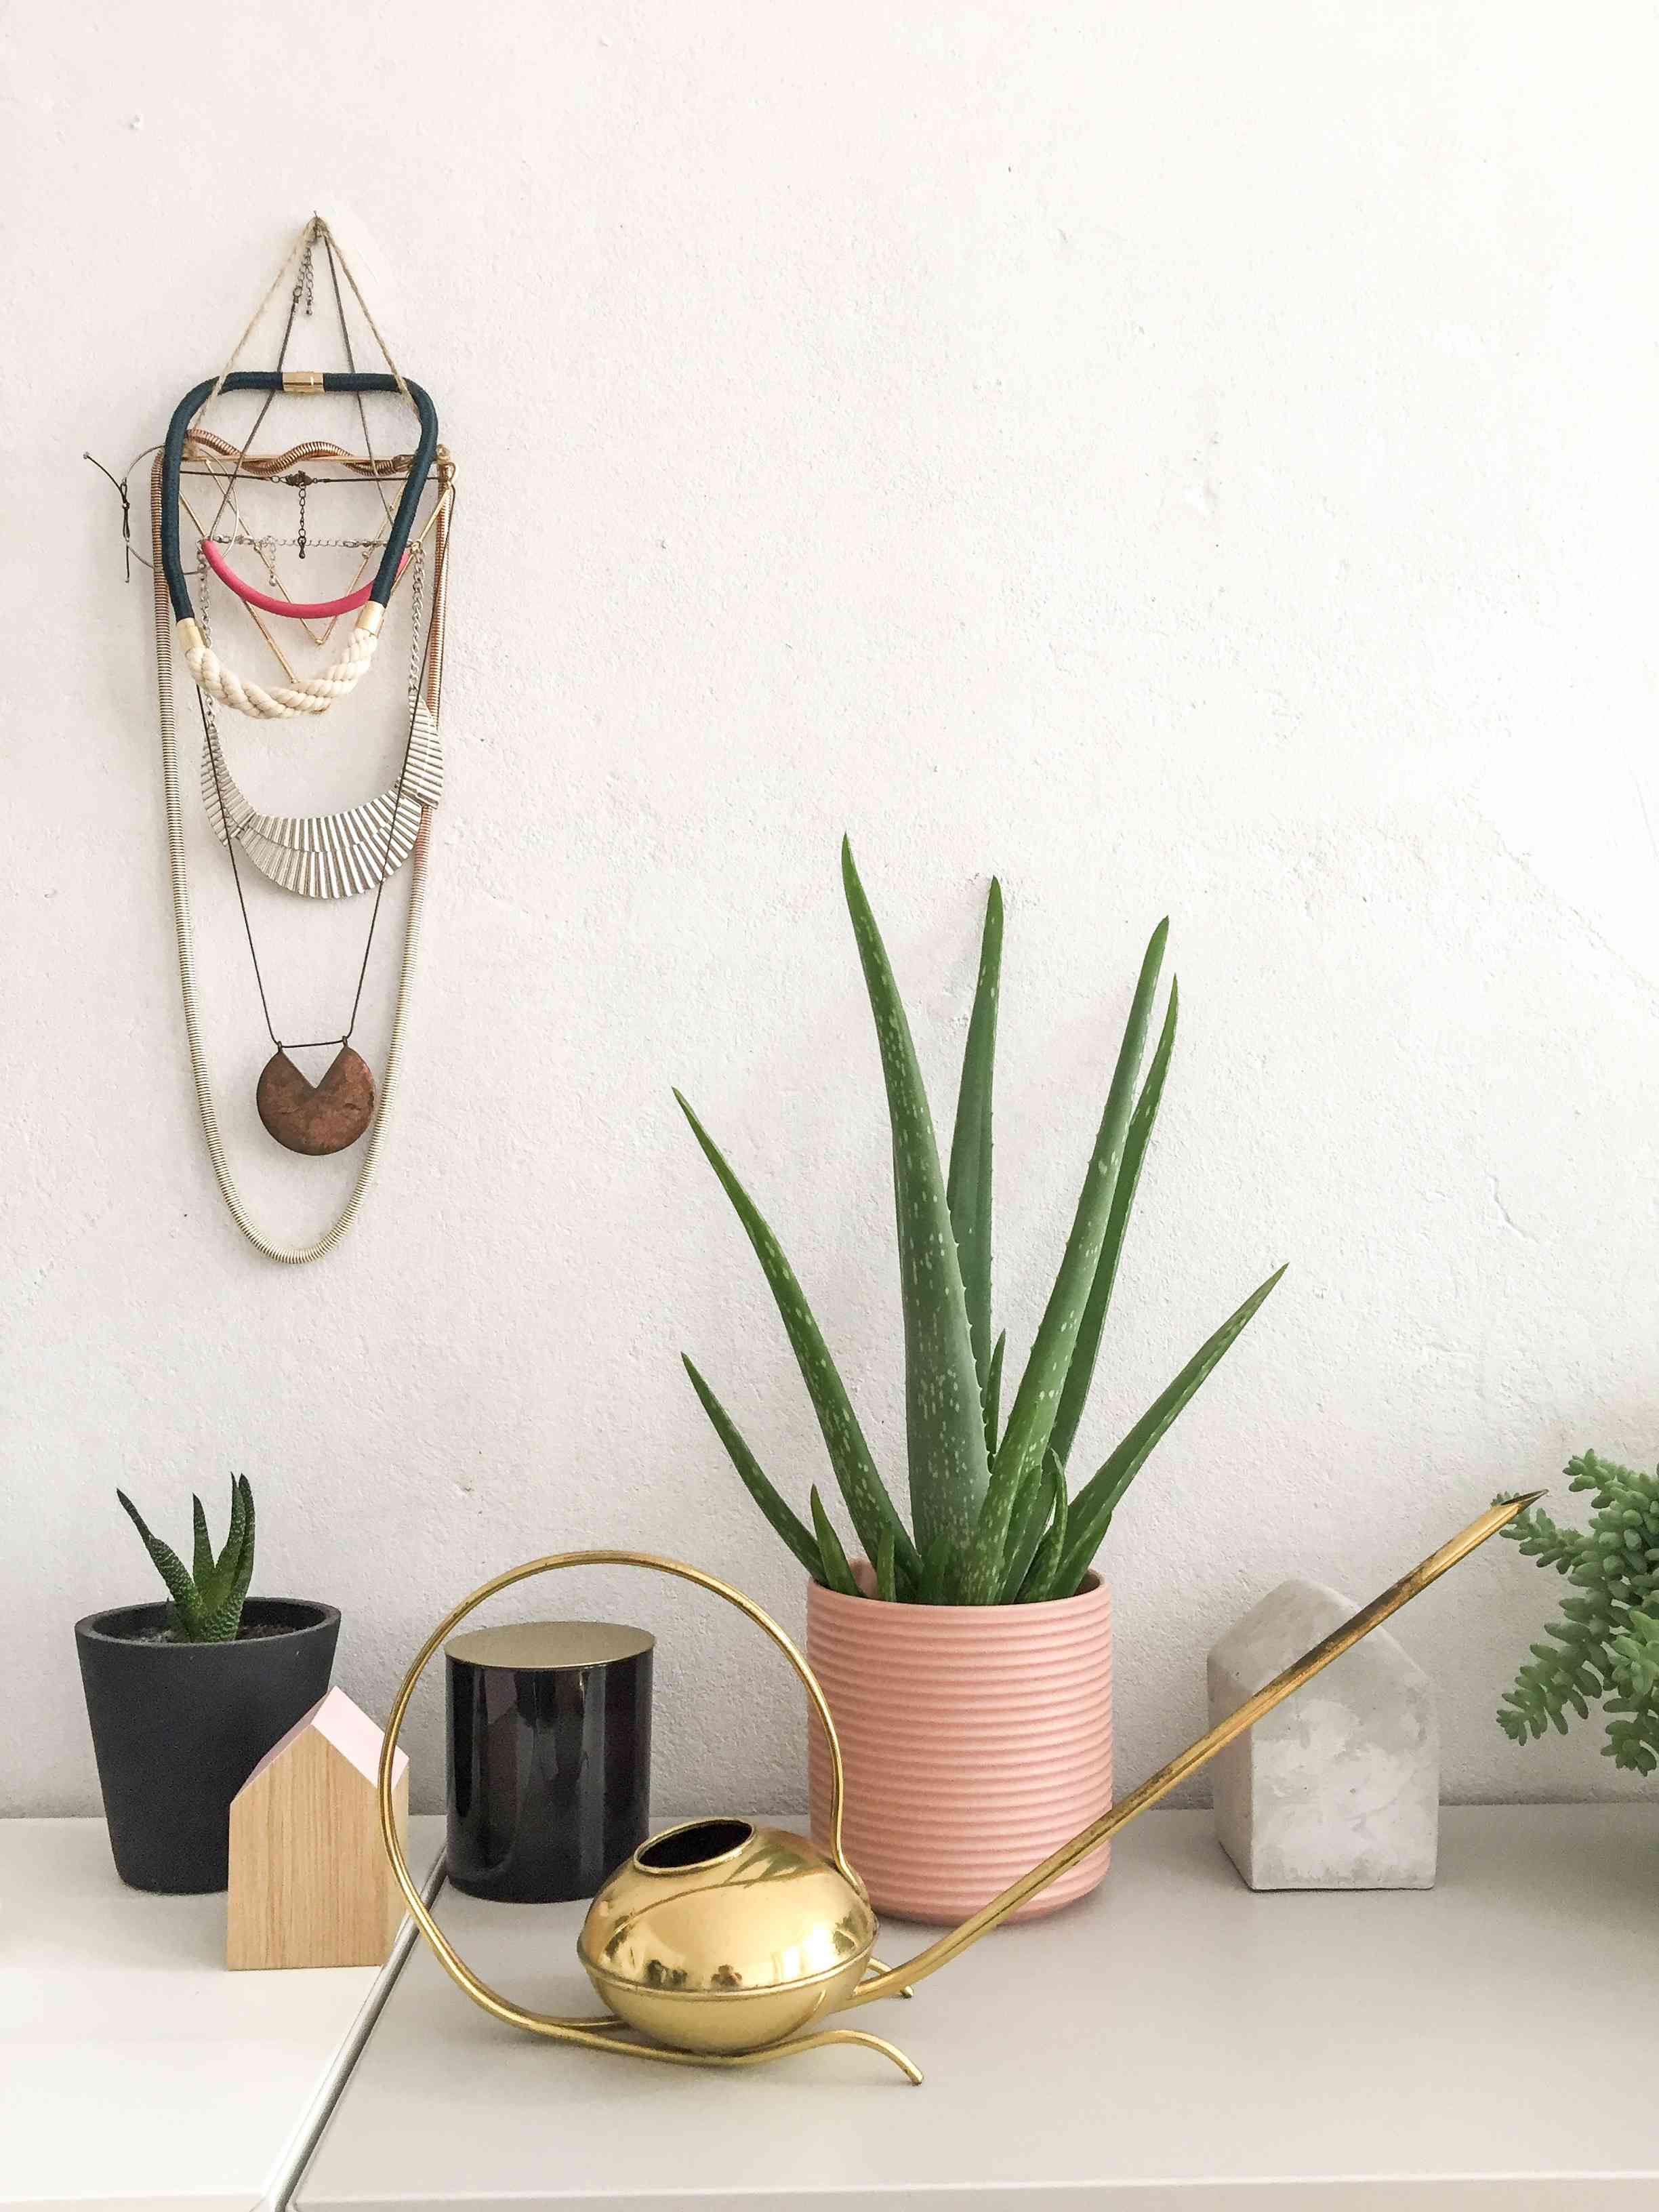 Aloe Vera and other plants in colorful pots